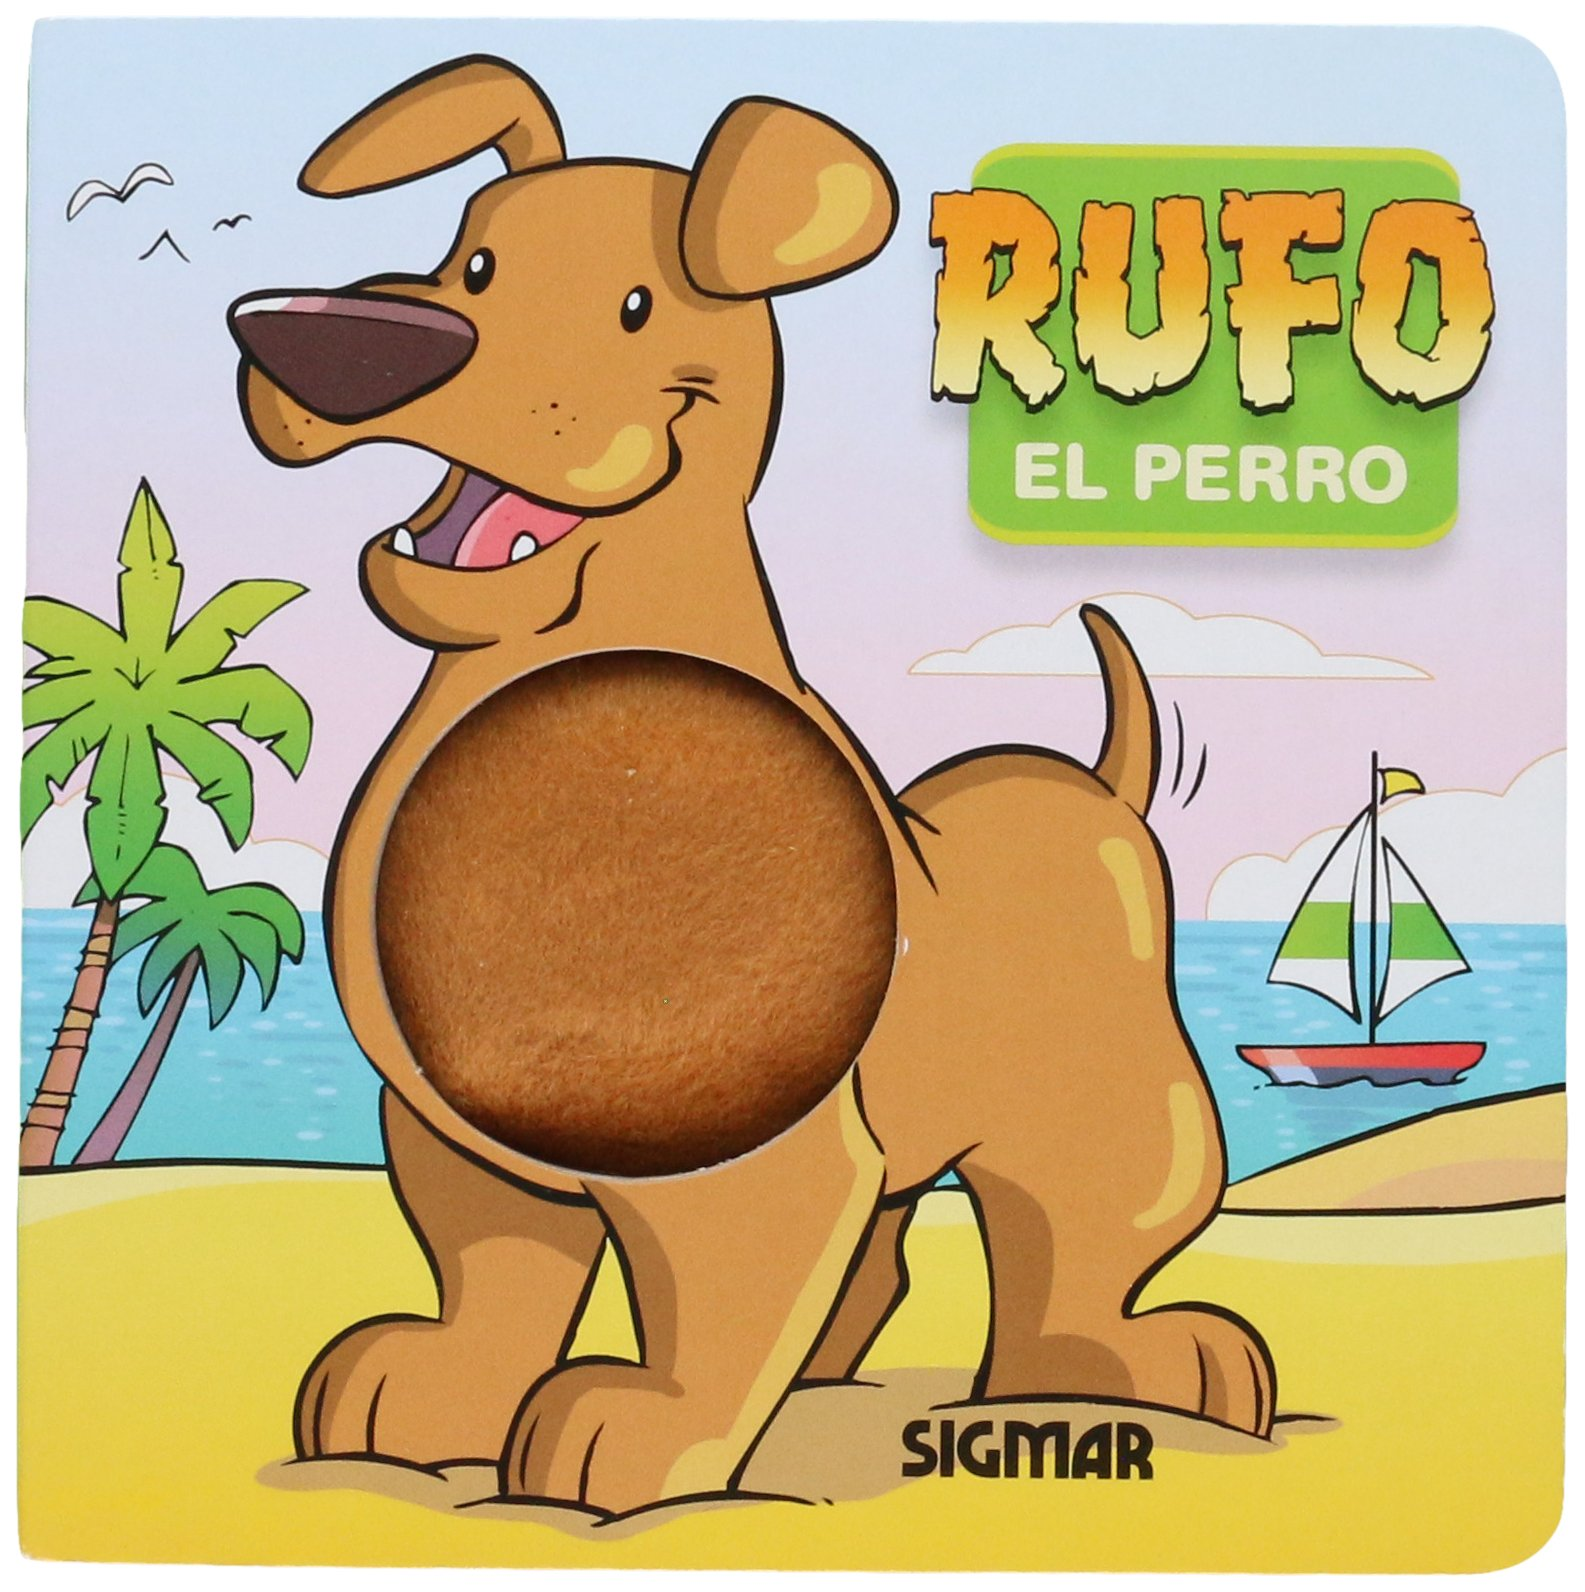 Rufo El Perro / Rufo the dog (Spanish Edition) (Spanish) Board book – January 1, 2011